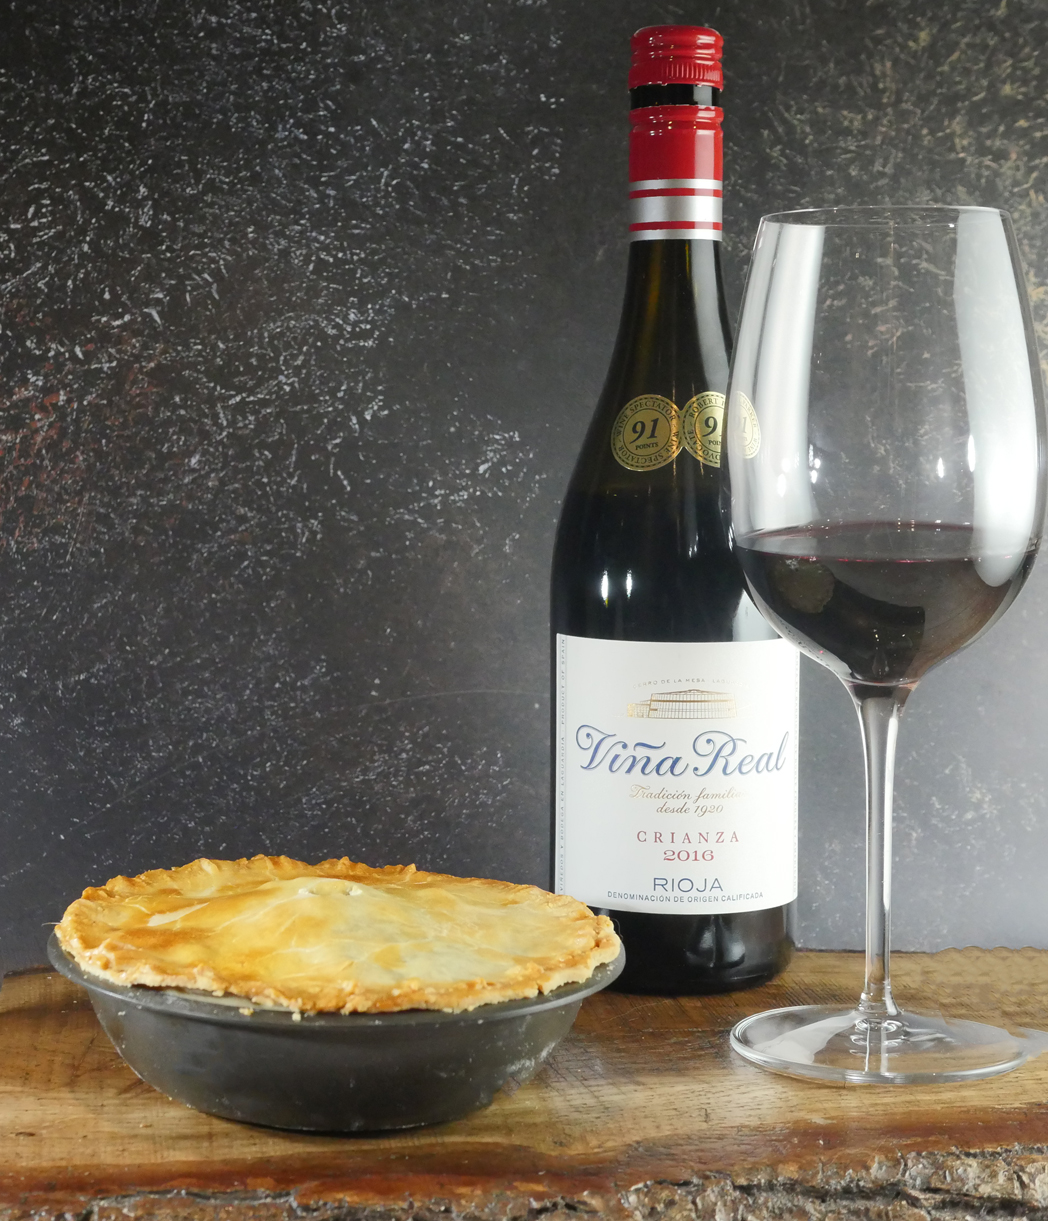 Beef and Ale Pie with wine